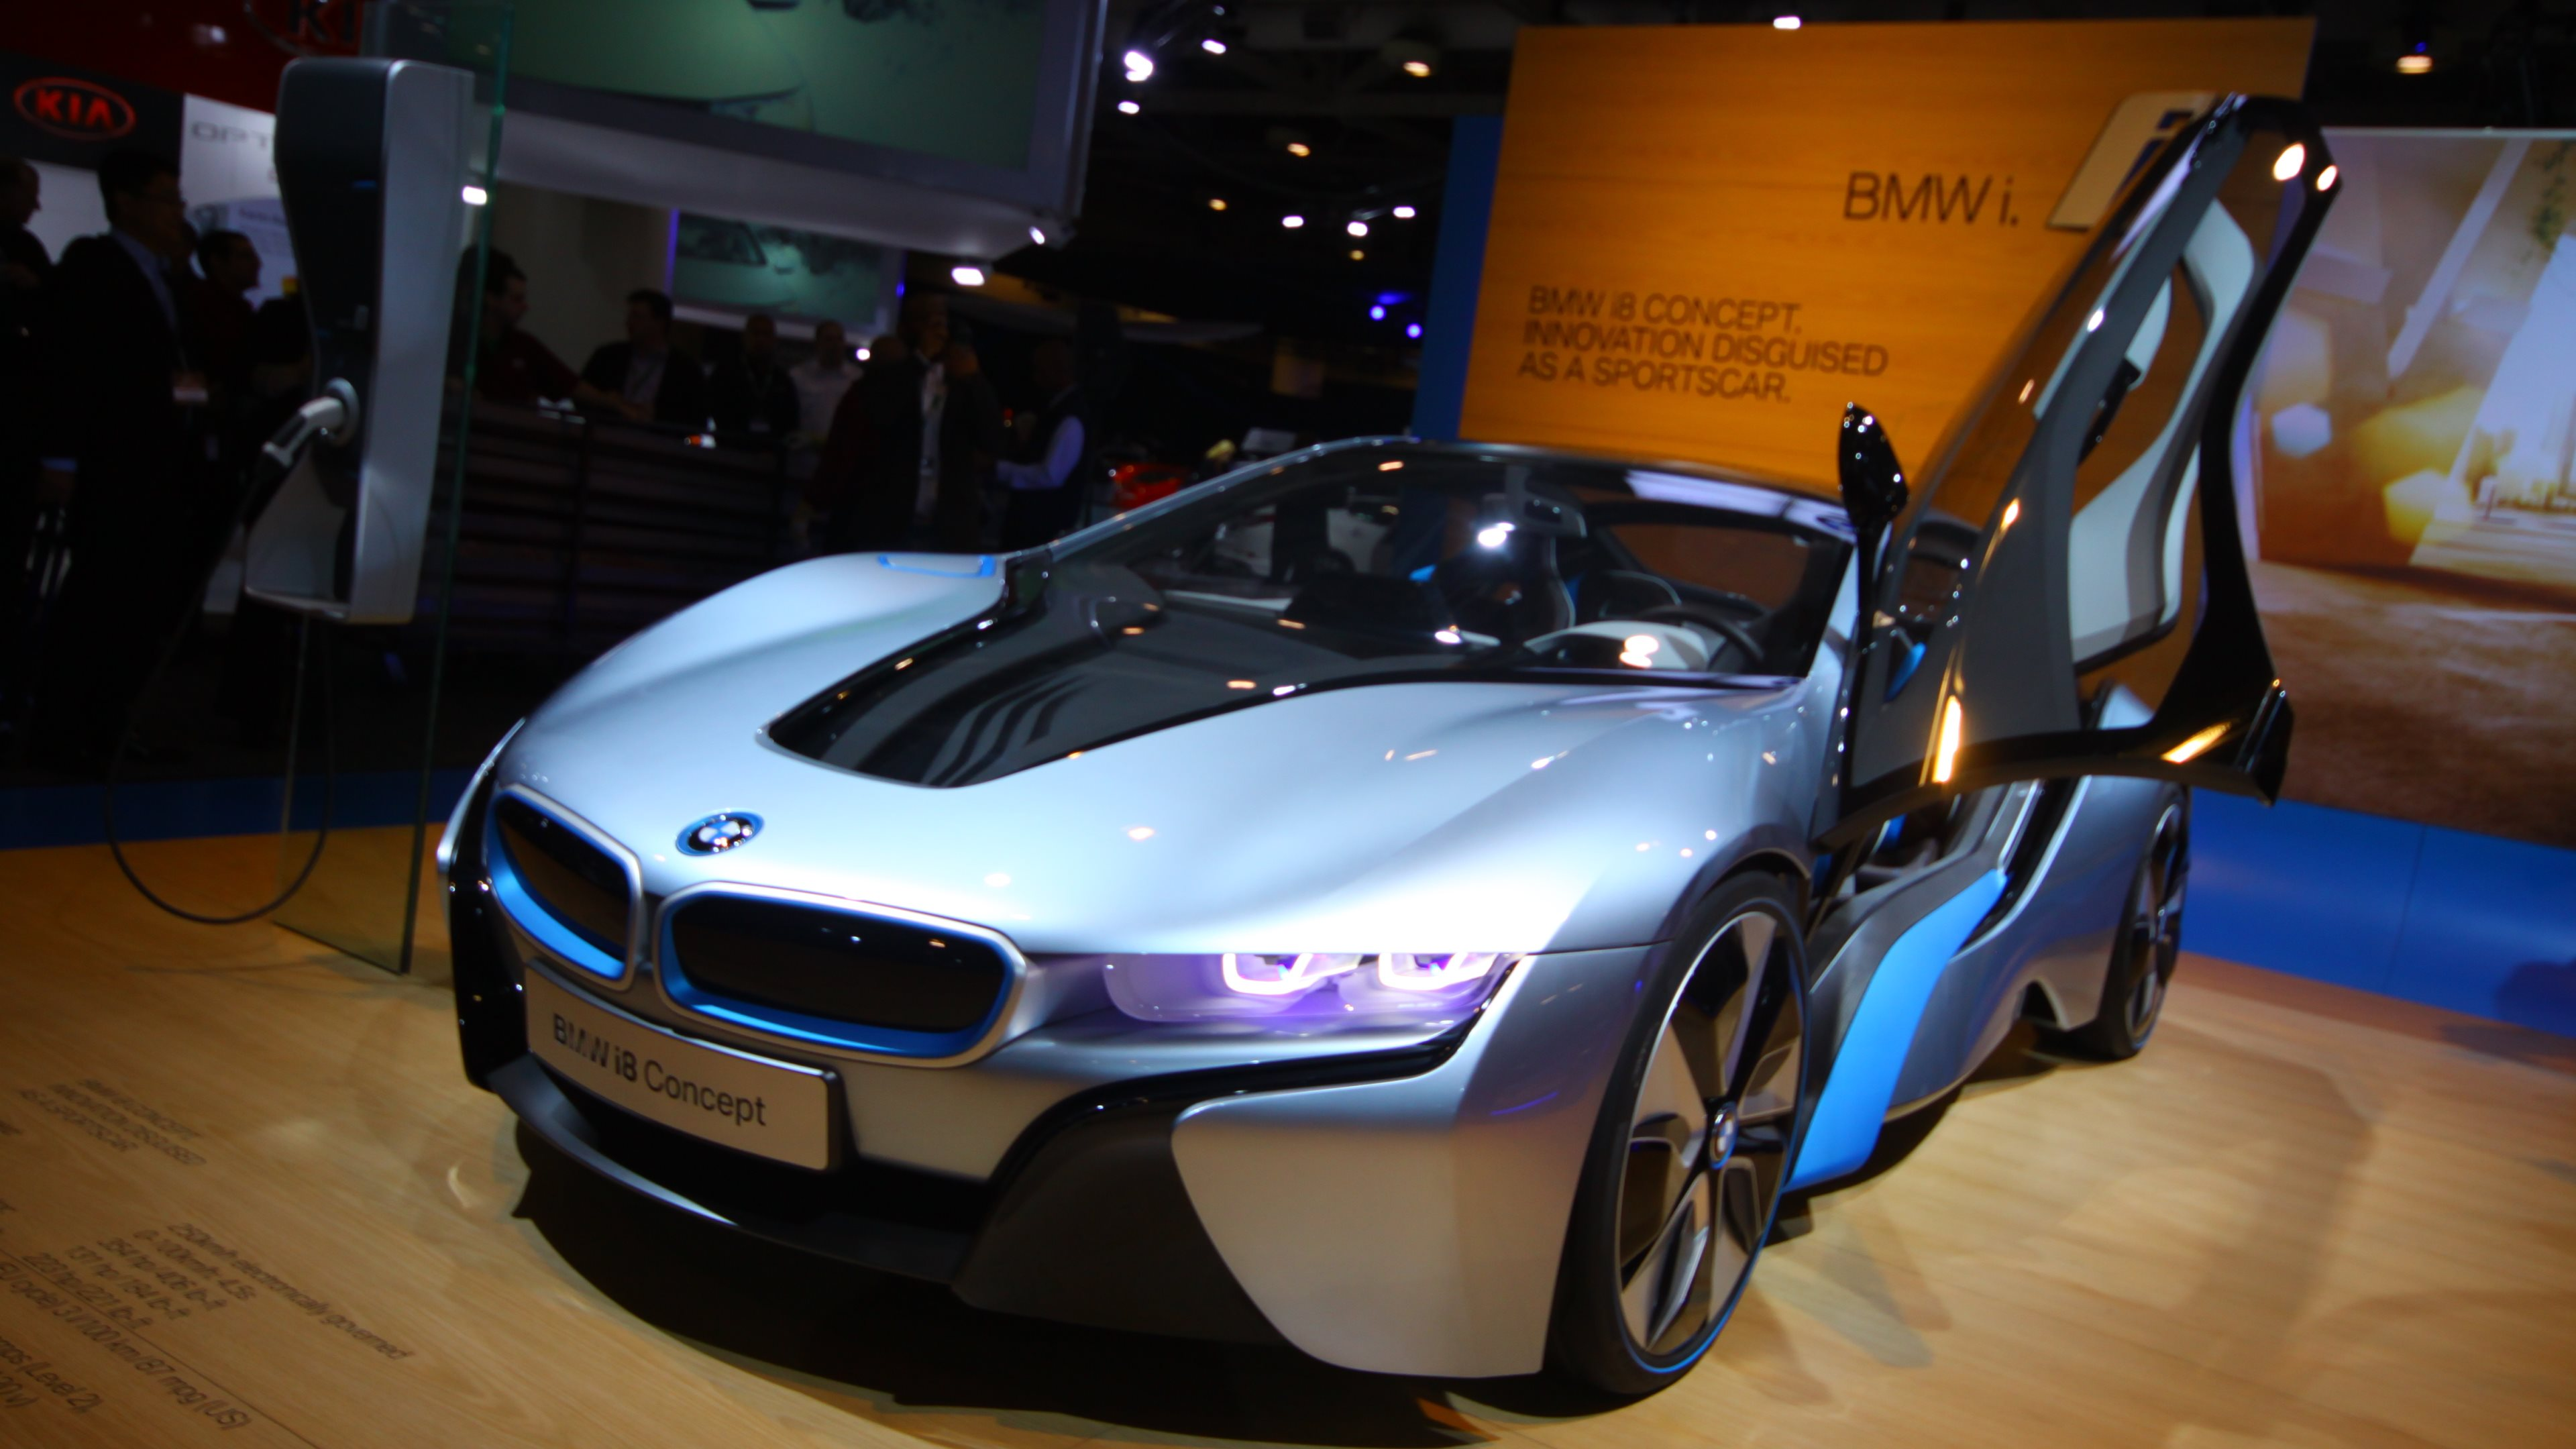 Best Super Car Wallpaper For Windows 10 Bmw I8 Wallpapers Pictures Images